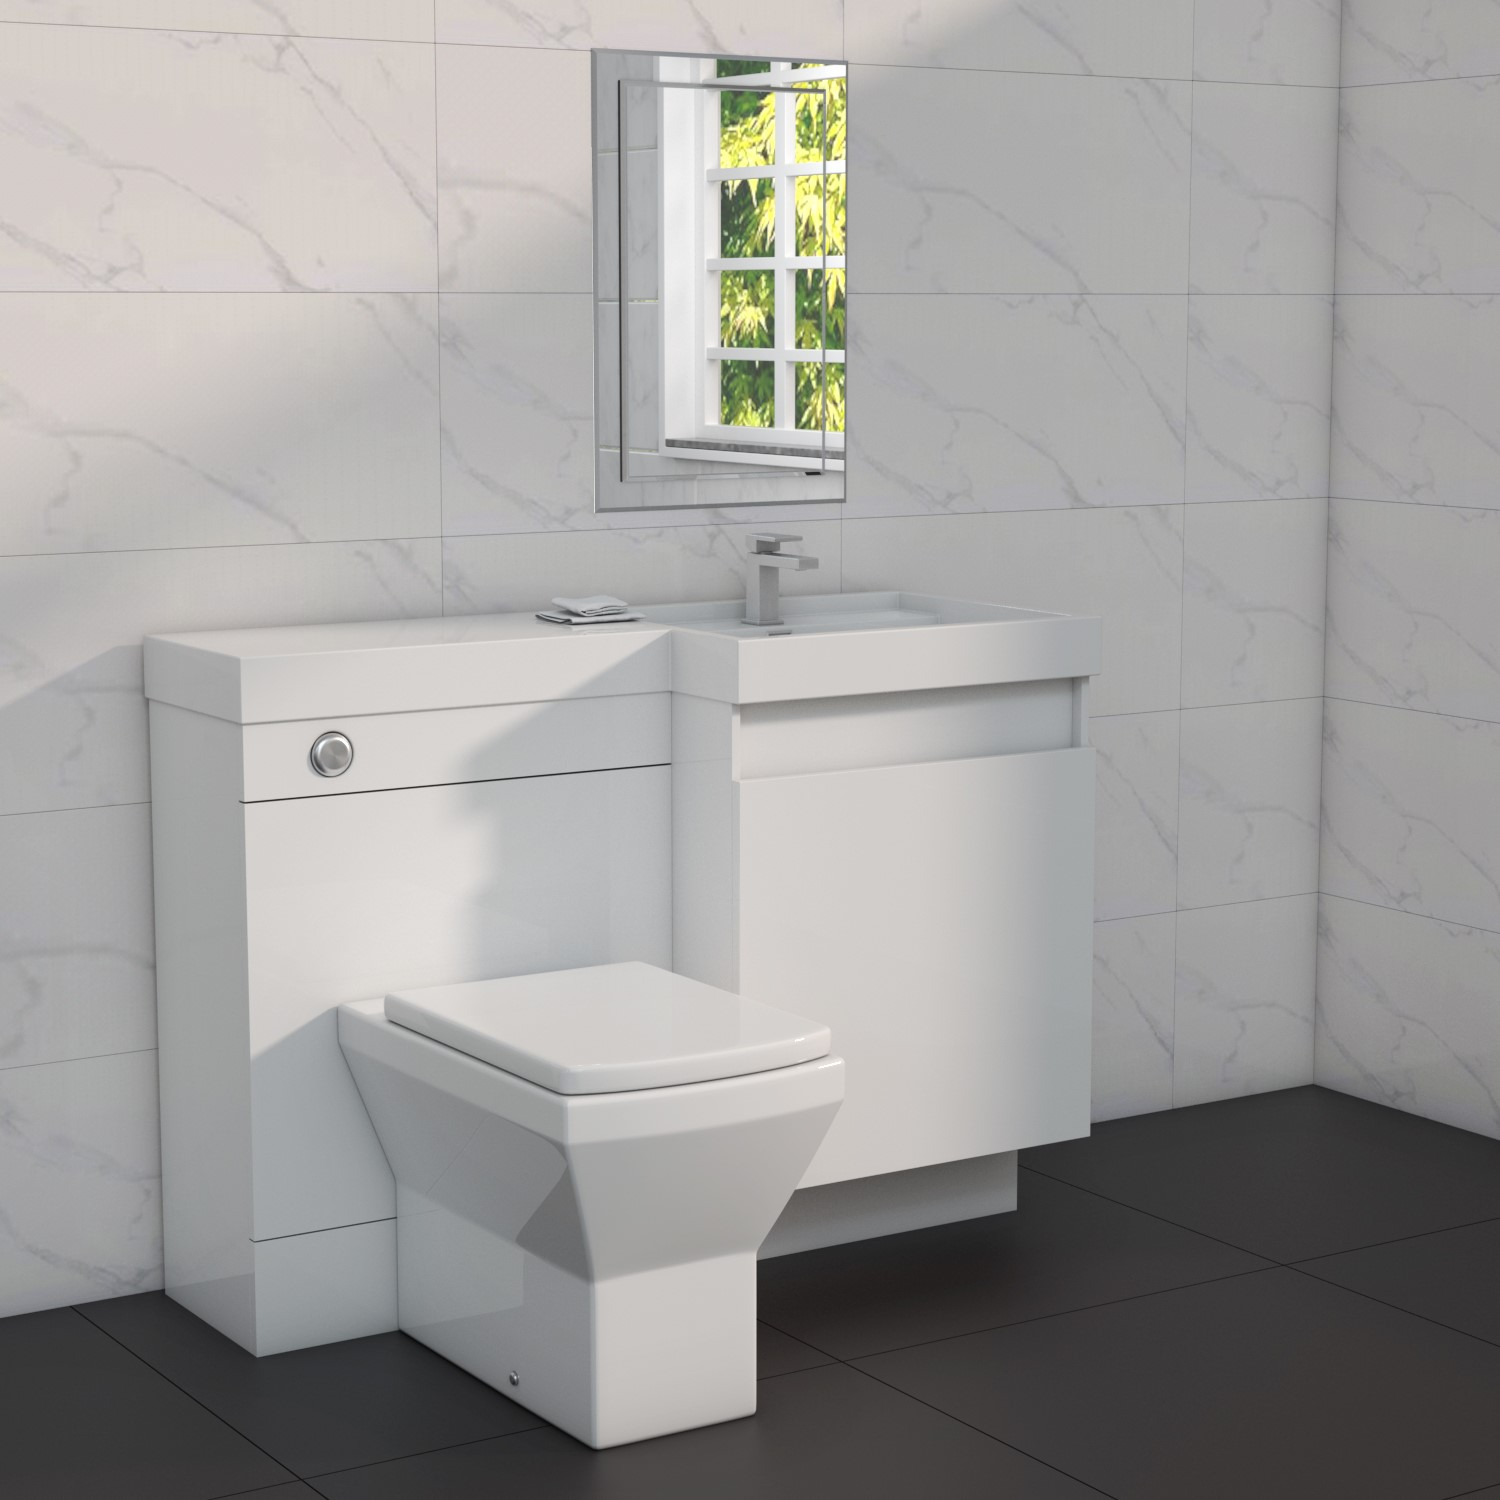 1200mm toilet and basin combination unit 2 drawers white right hand agora